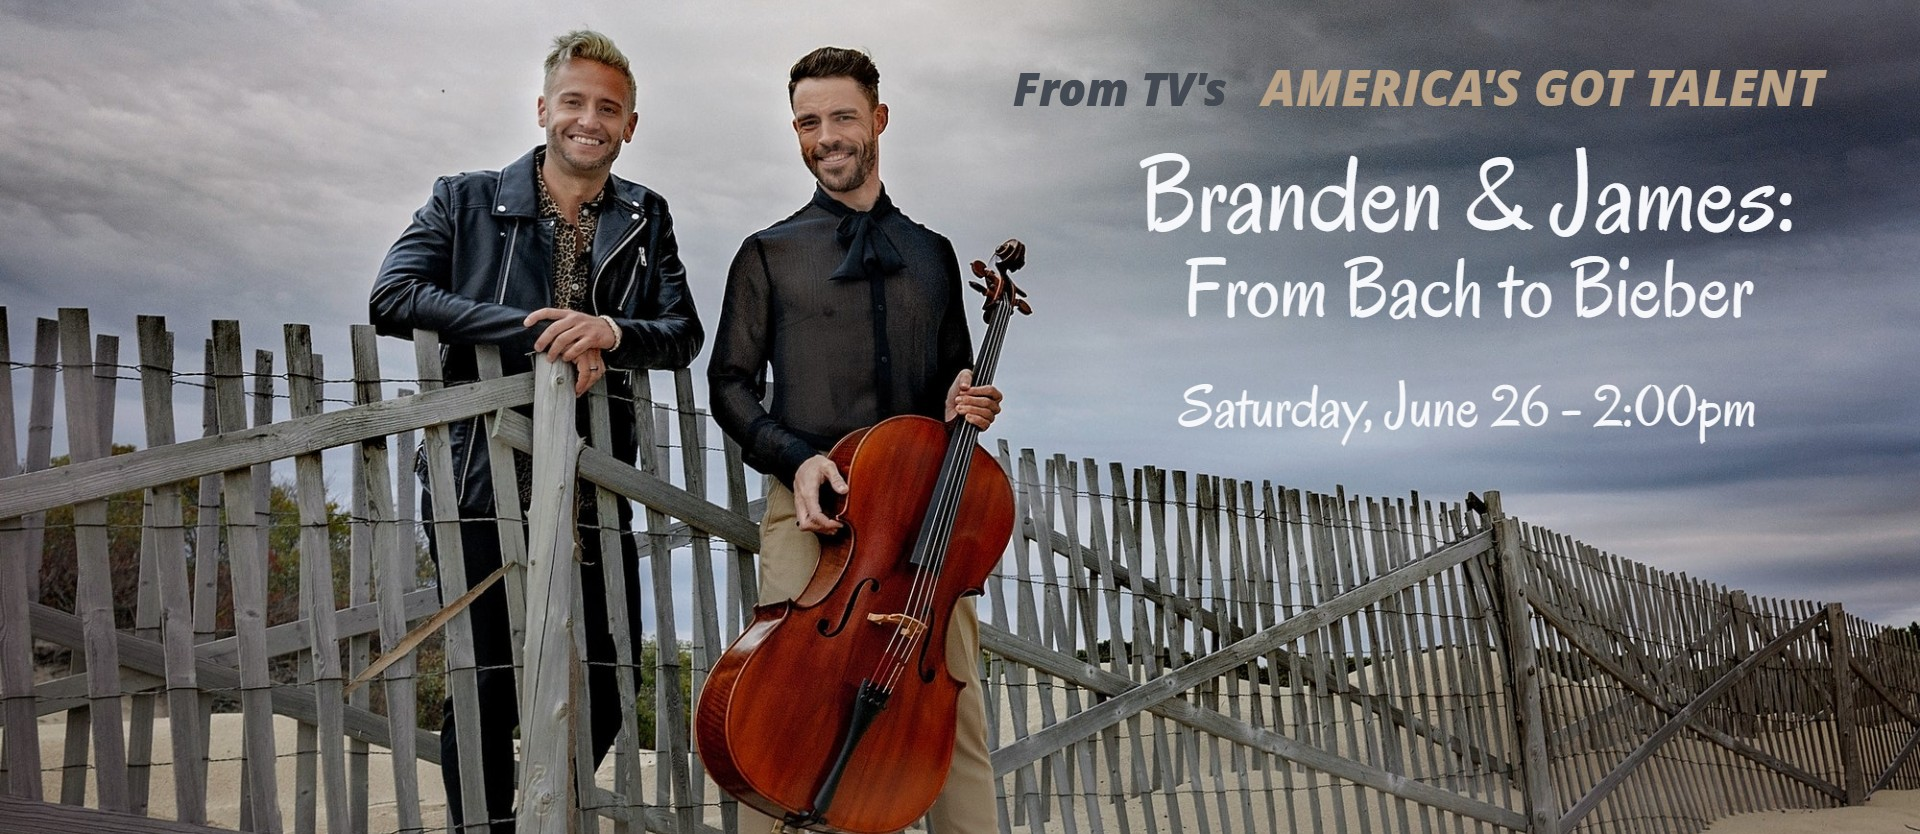 Branden & James - From Bach to Bieber (IN PERSON) - 2pm